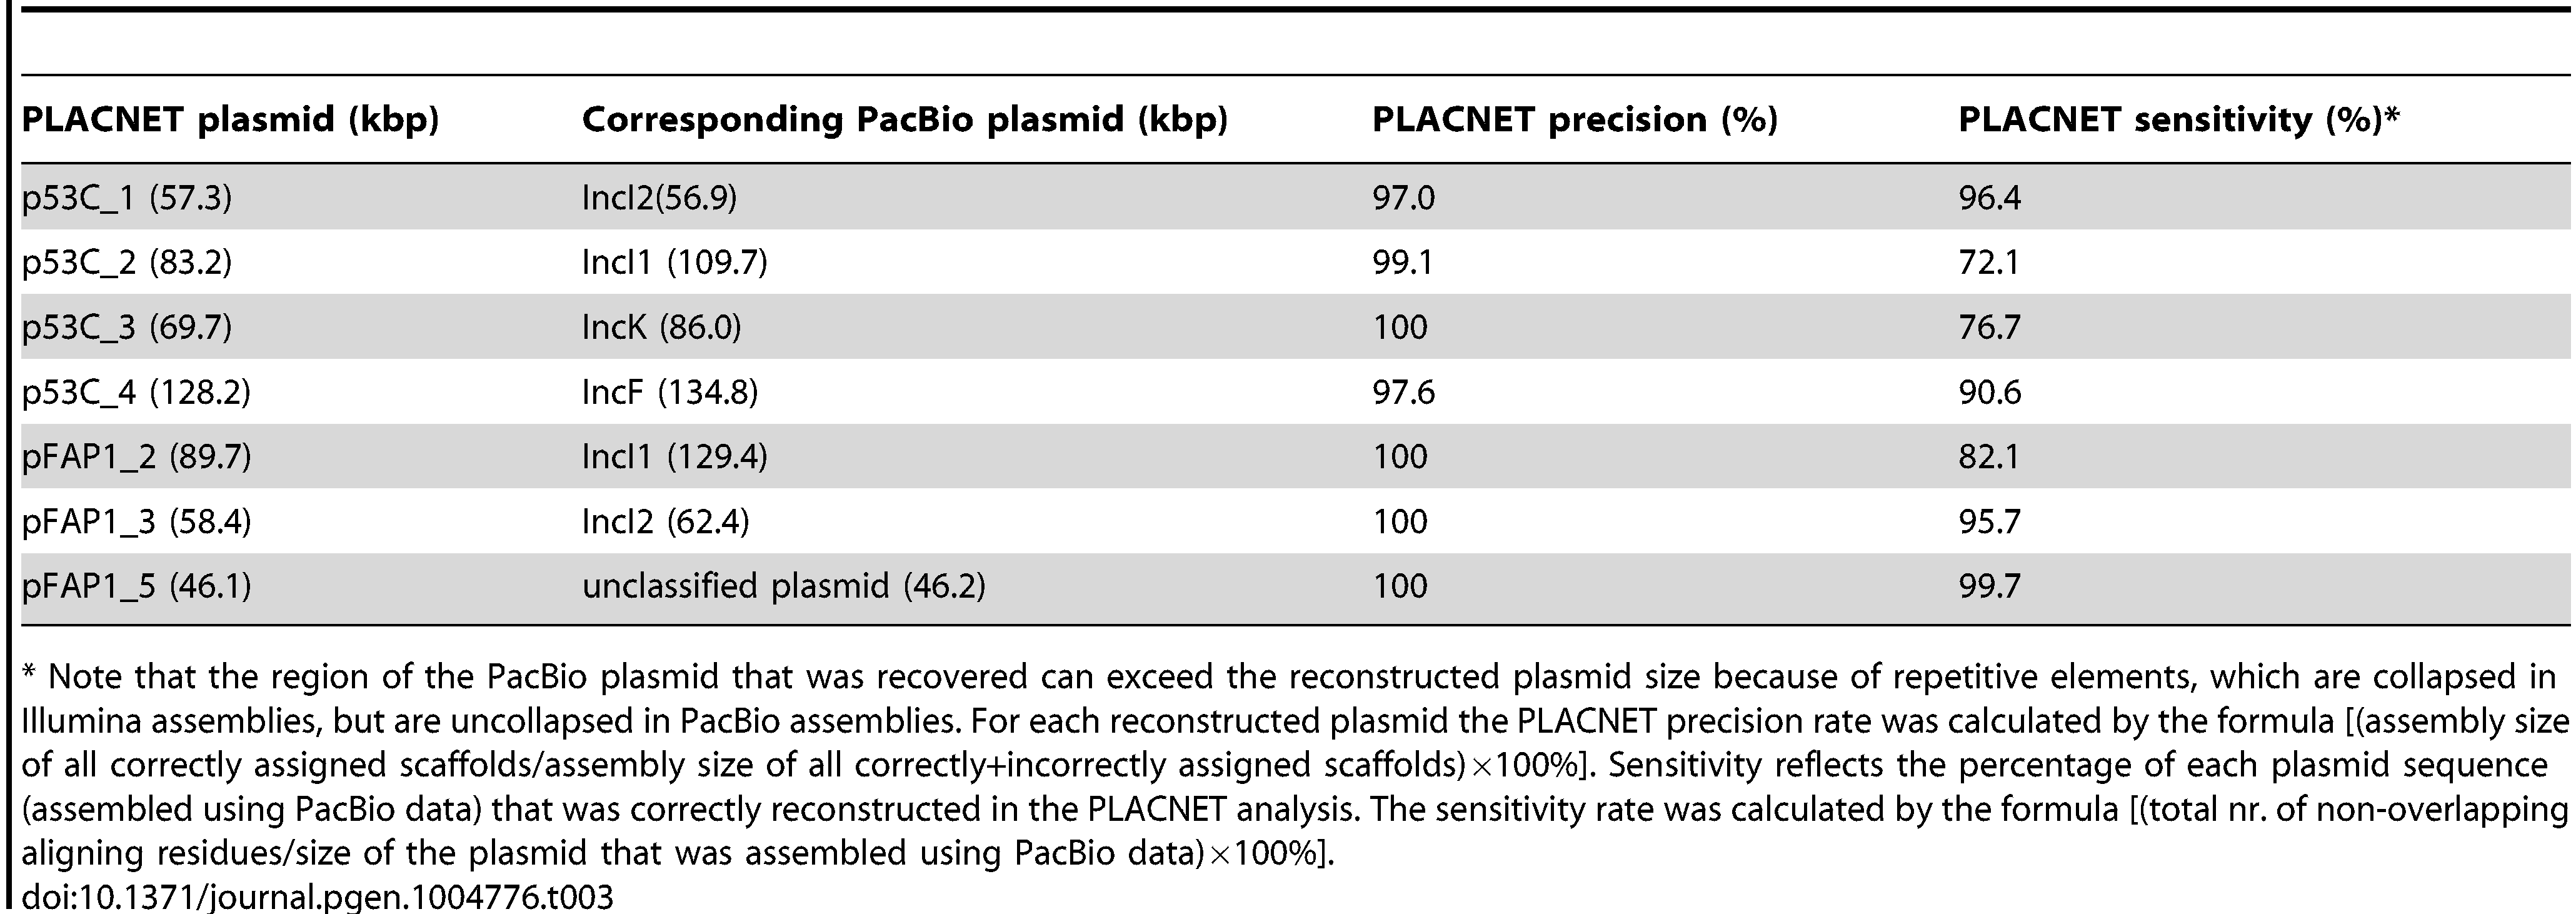 PLACNET precision and sensitivity rates for seven reconstructed plasmids.